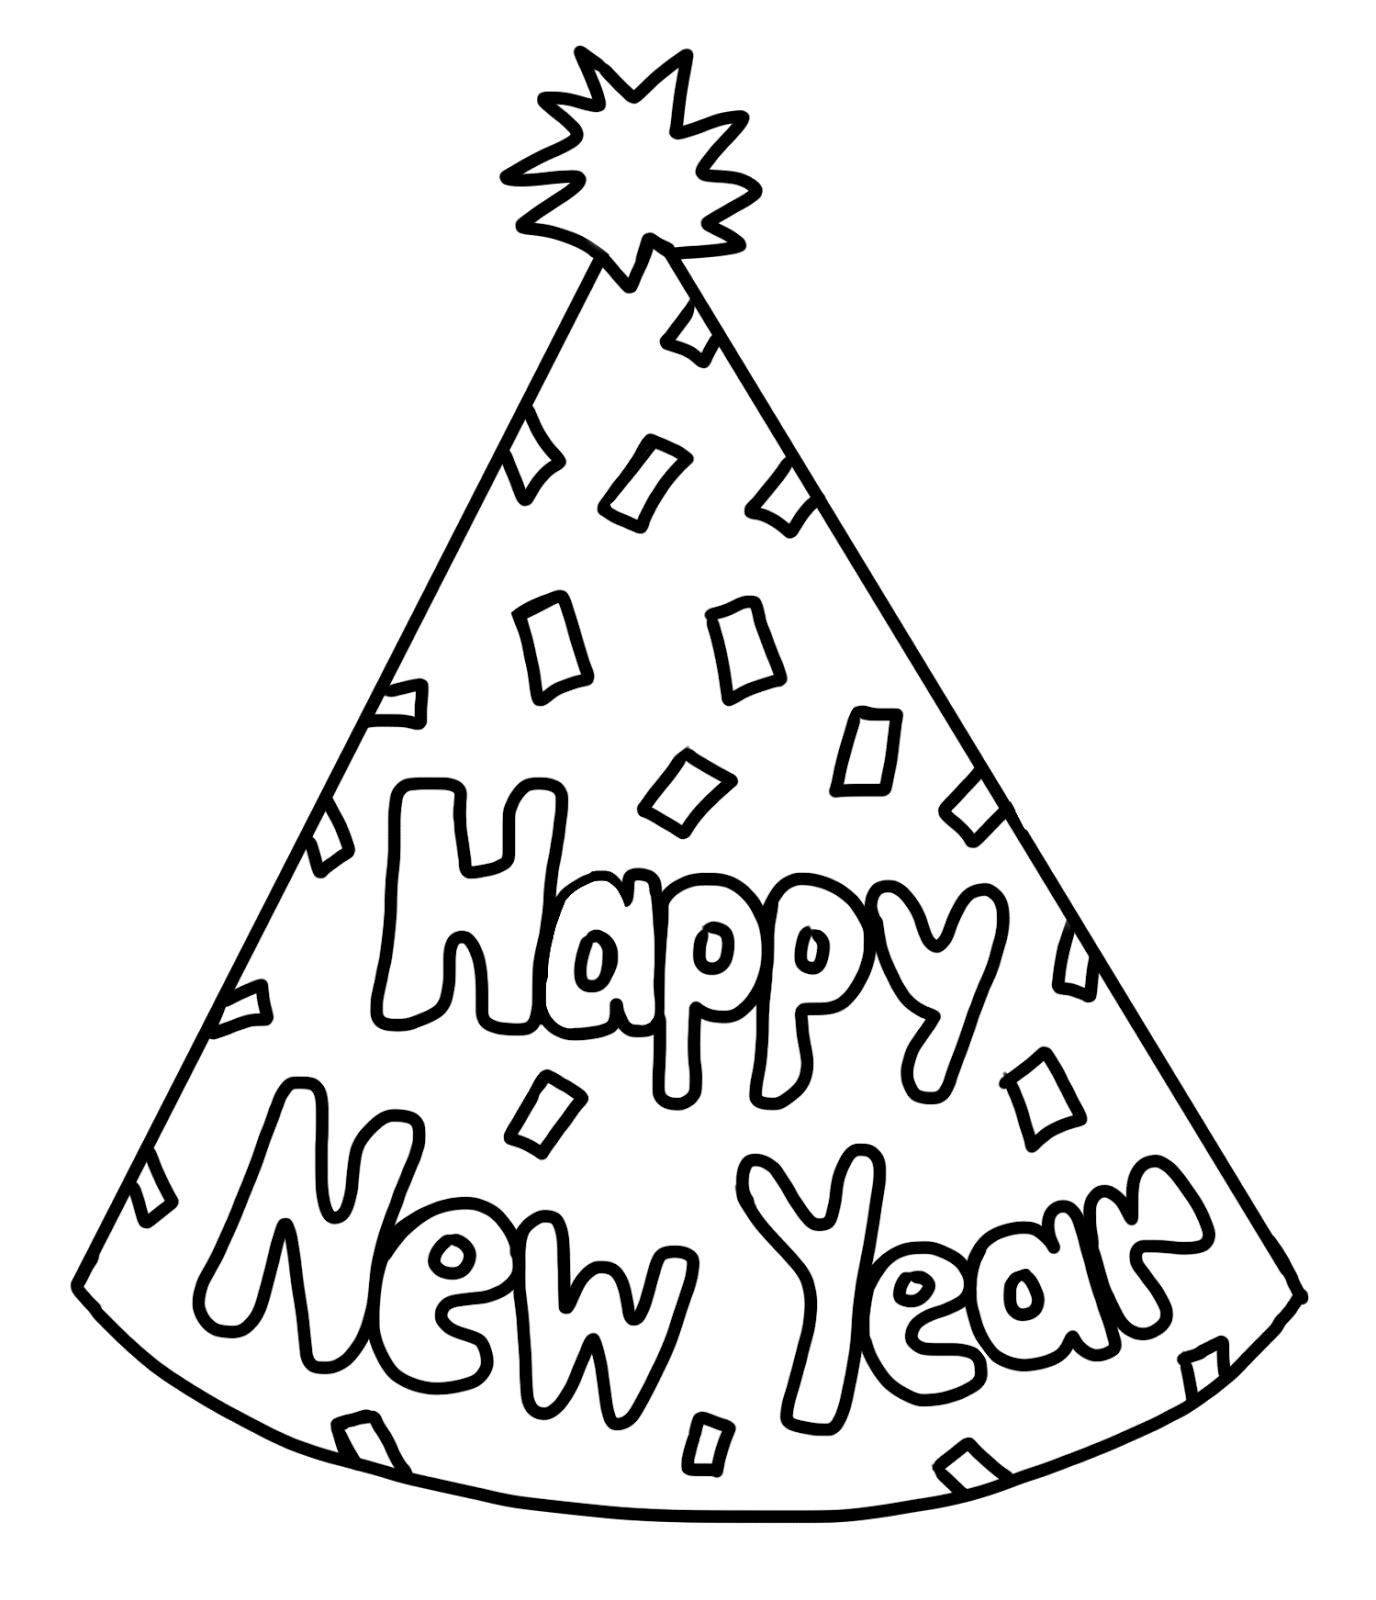 C & C Teach First Happy New Year Party Hat FREEBIE New